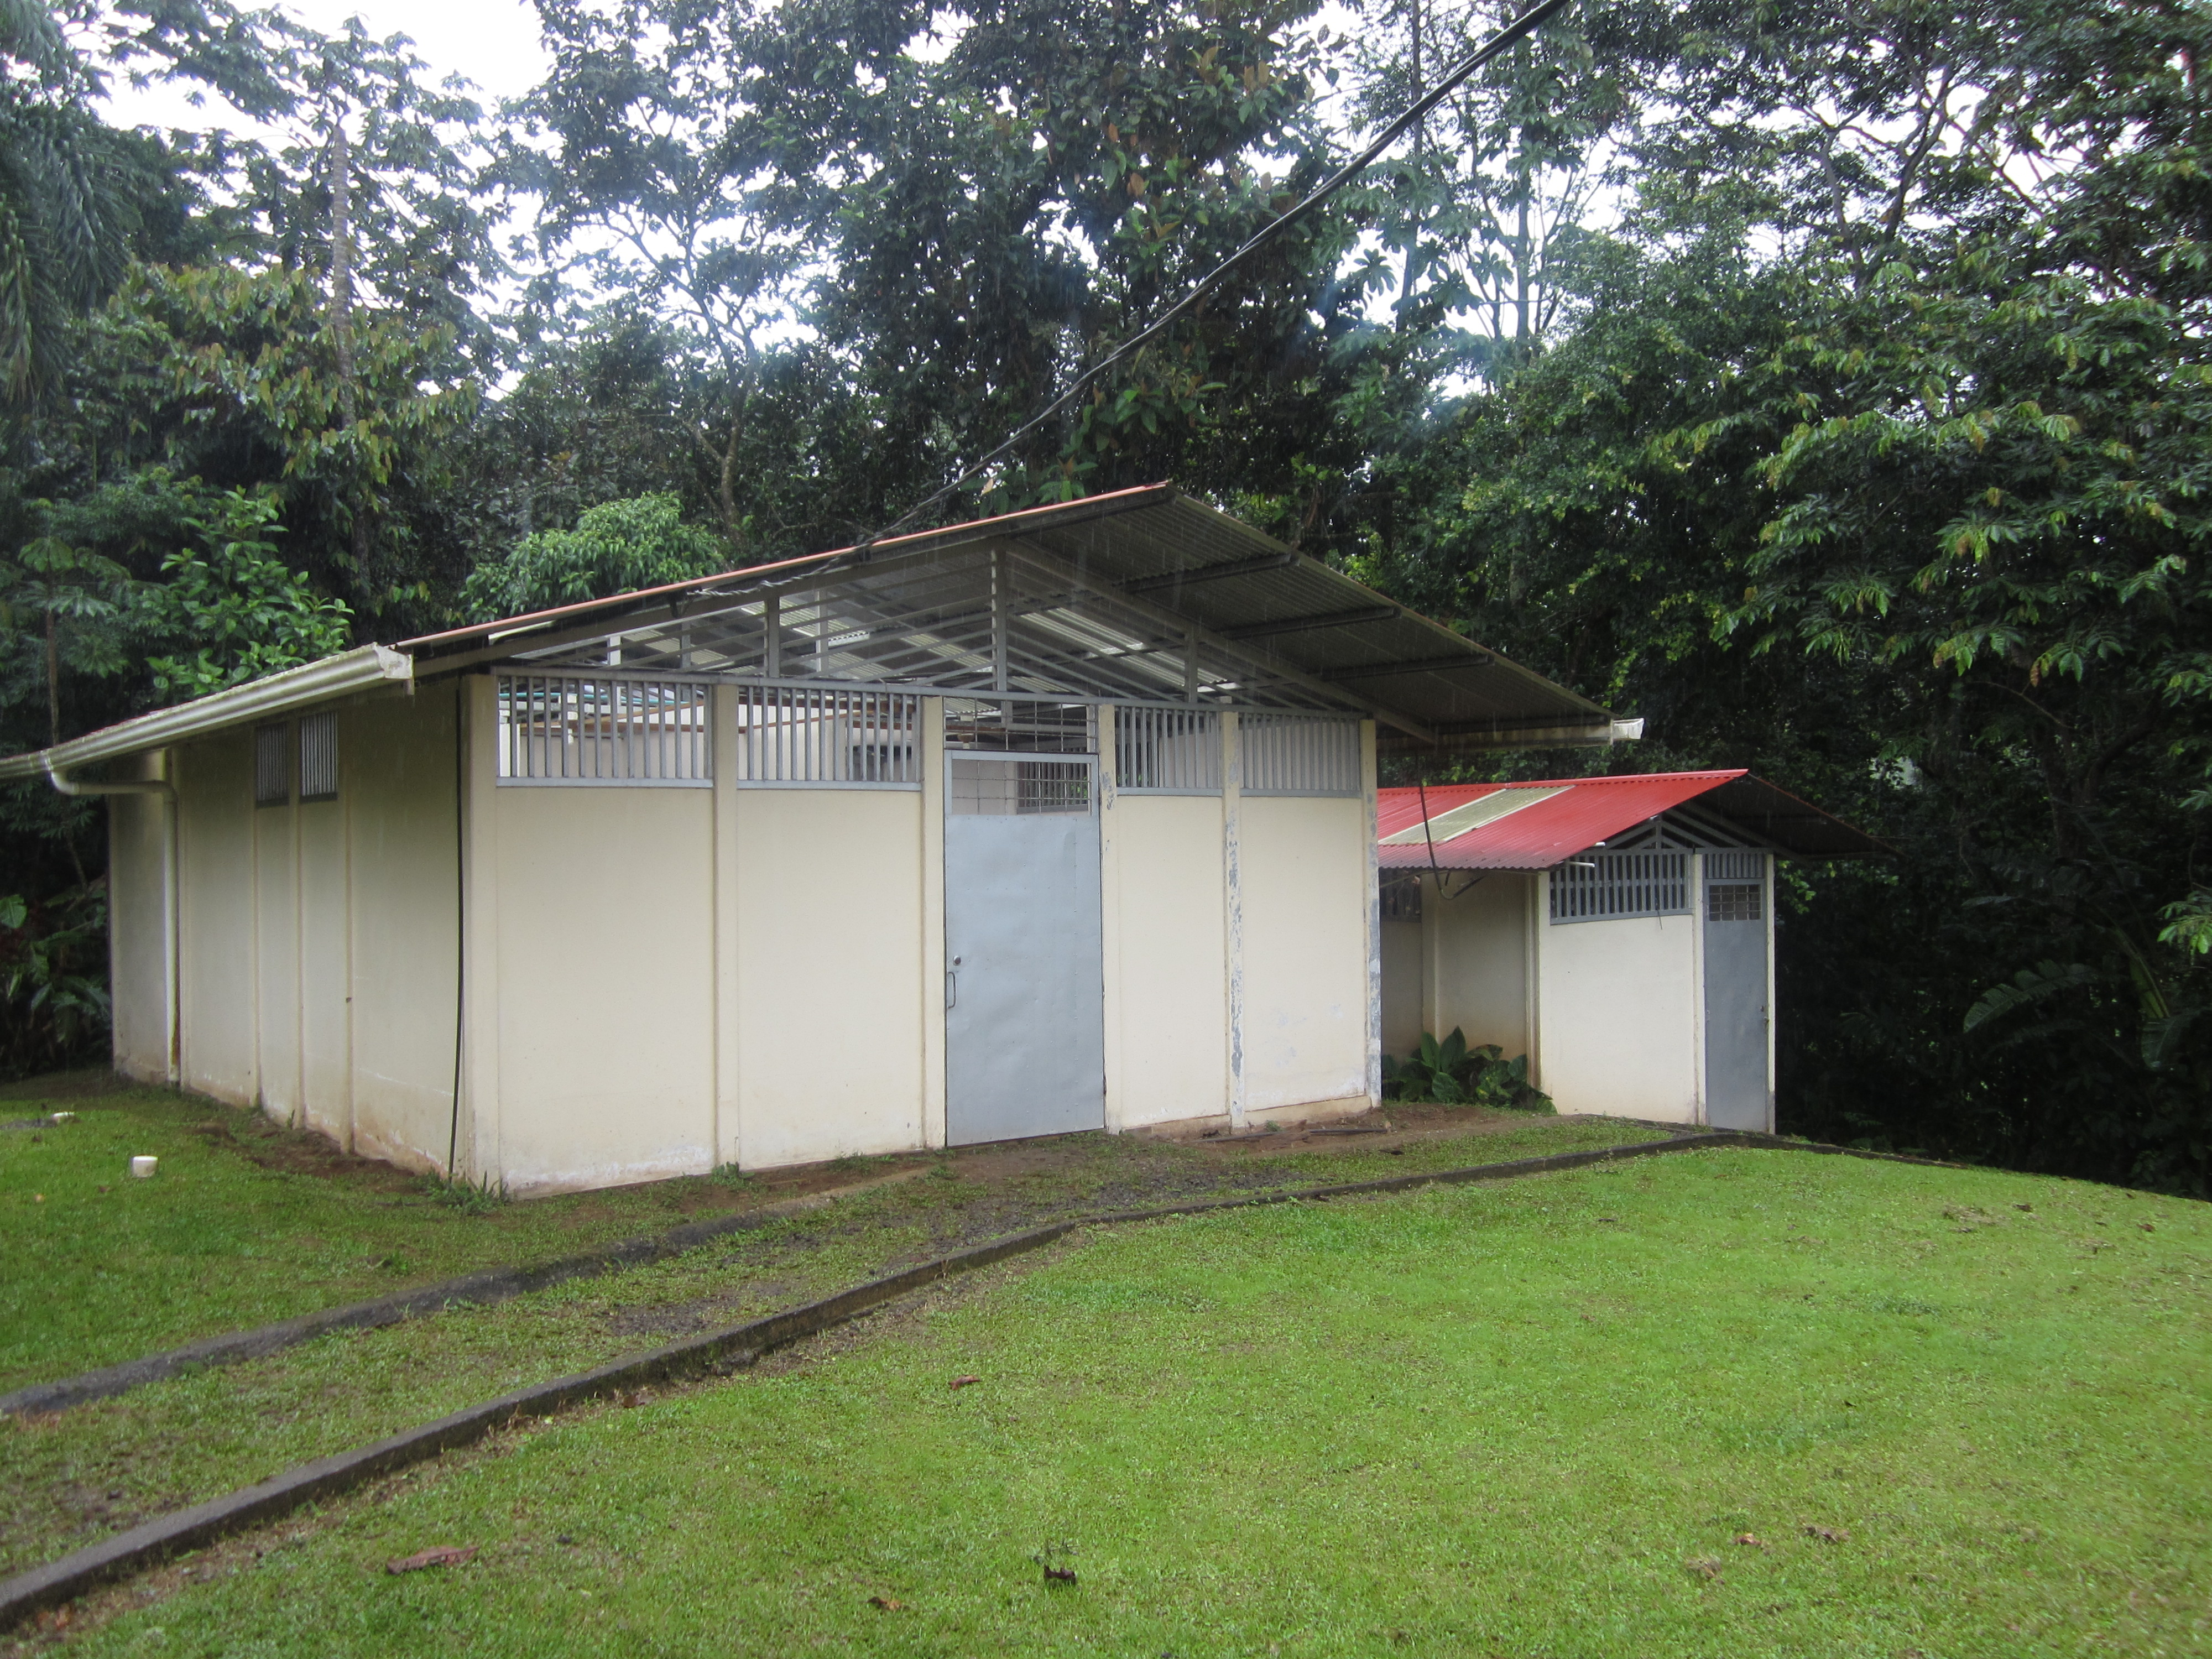 The Costa Rican Amphibian Research Center